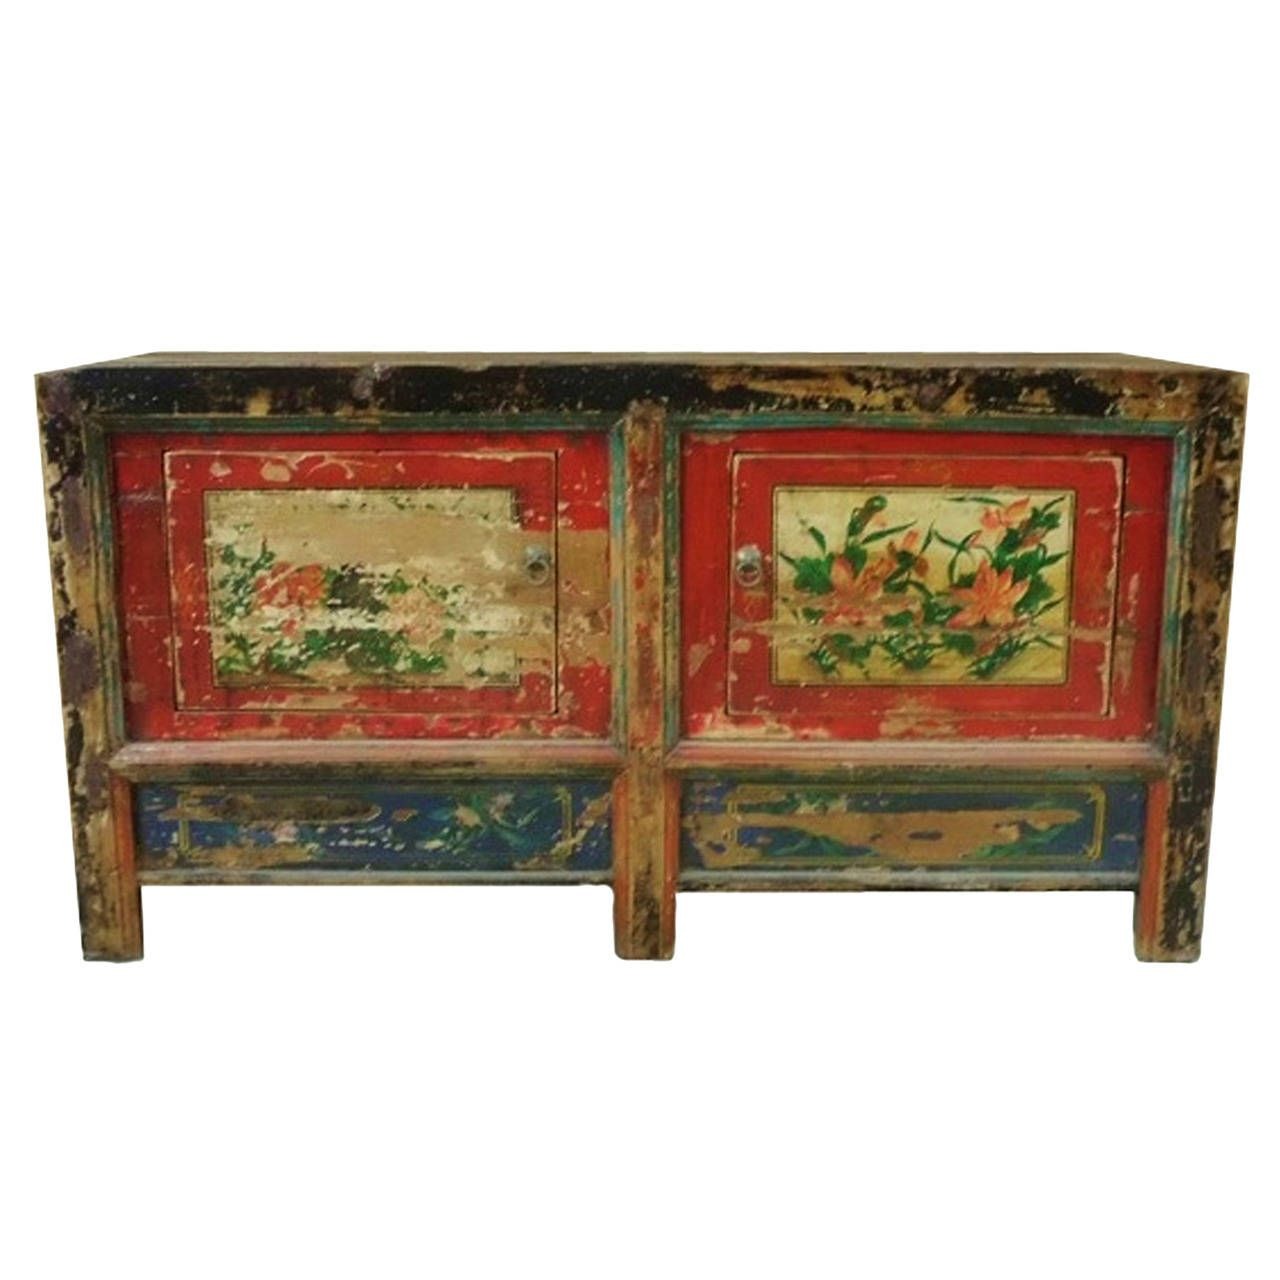 18th century mongolian lily chest from a unique collection of antique and modern furniture at